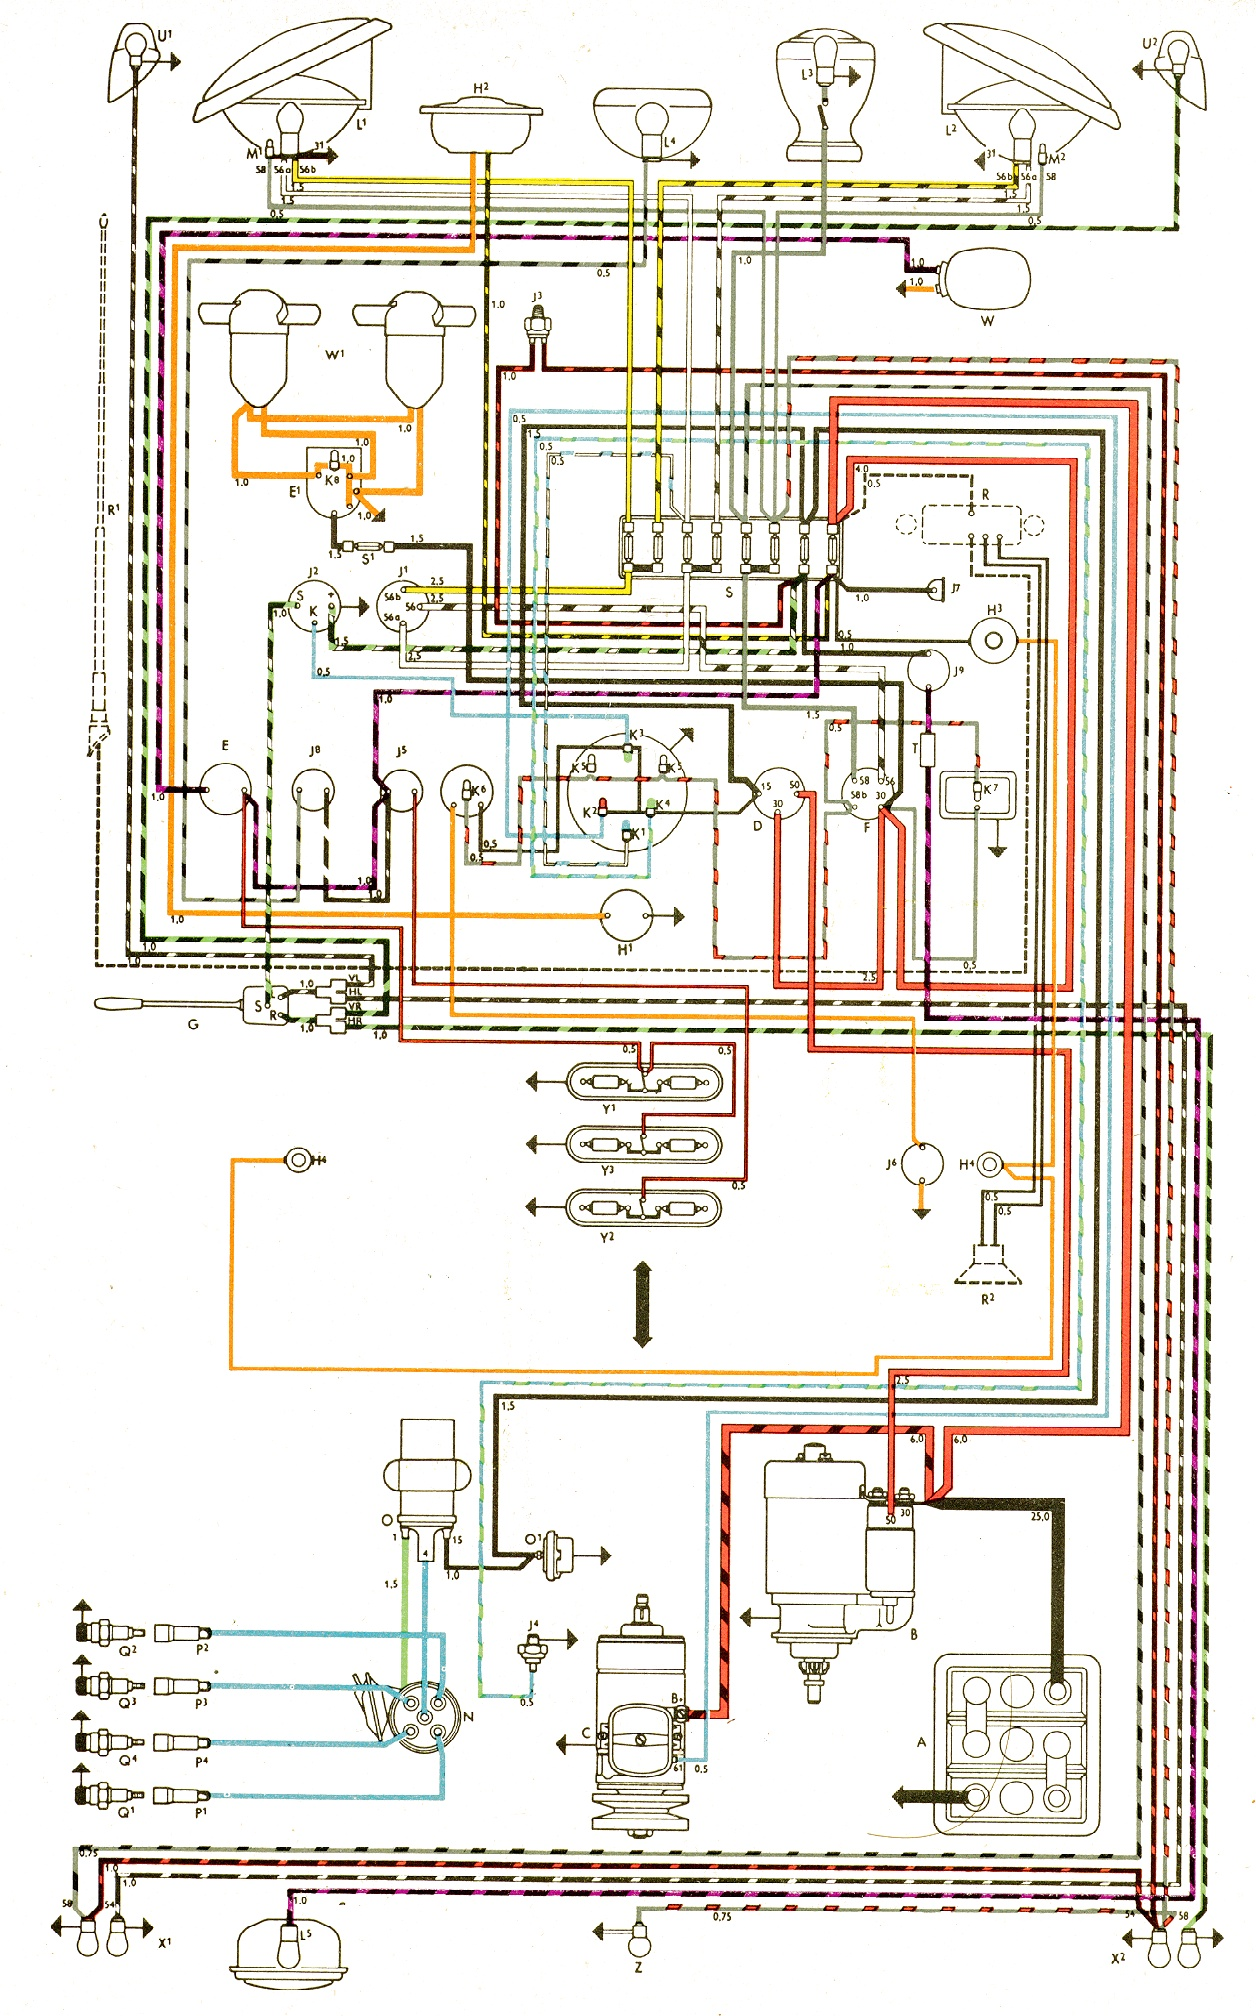 bus 62 bus wiring diagram vw wiring harness diagram \u2022 wiring diagrams j VW Bus Ignition Coil at cos-gaming.co